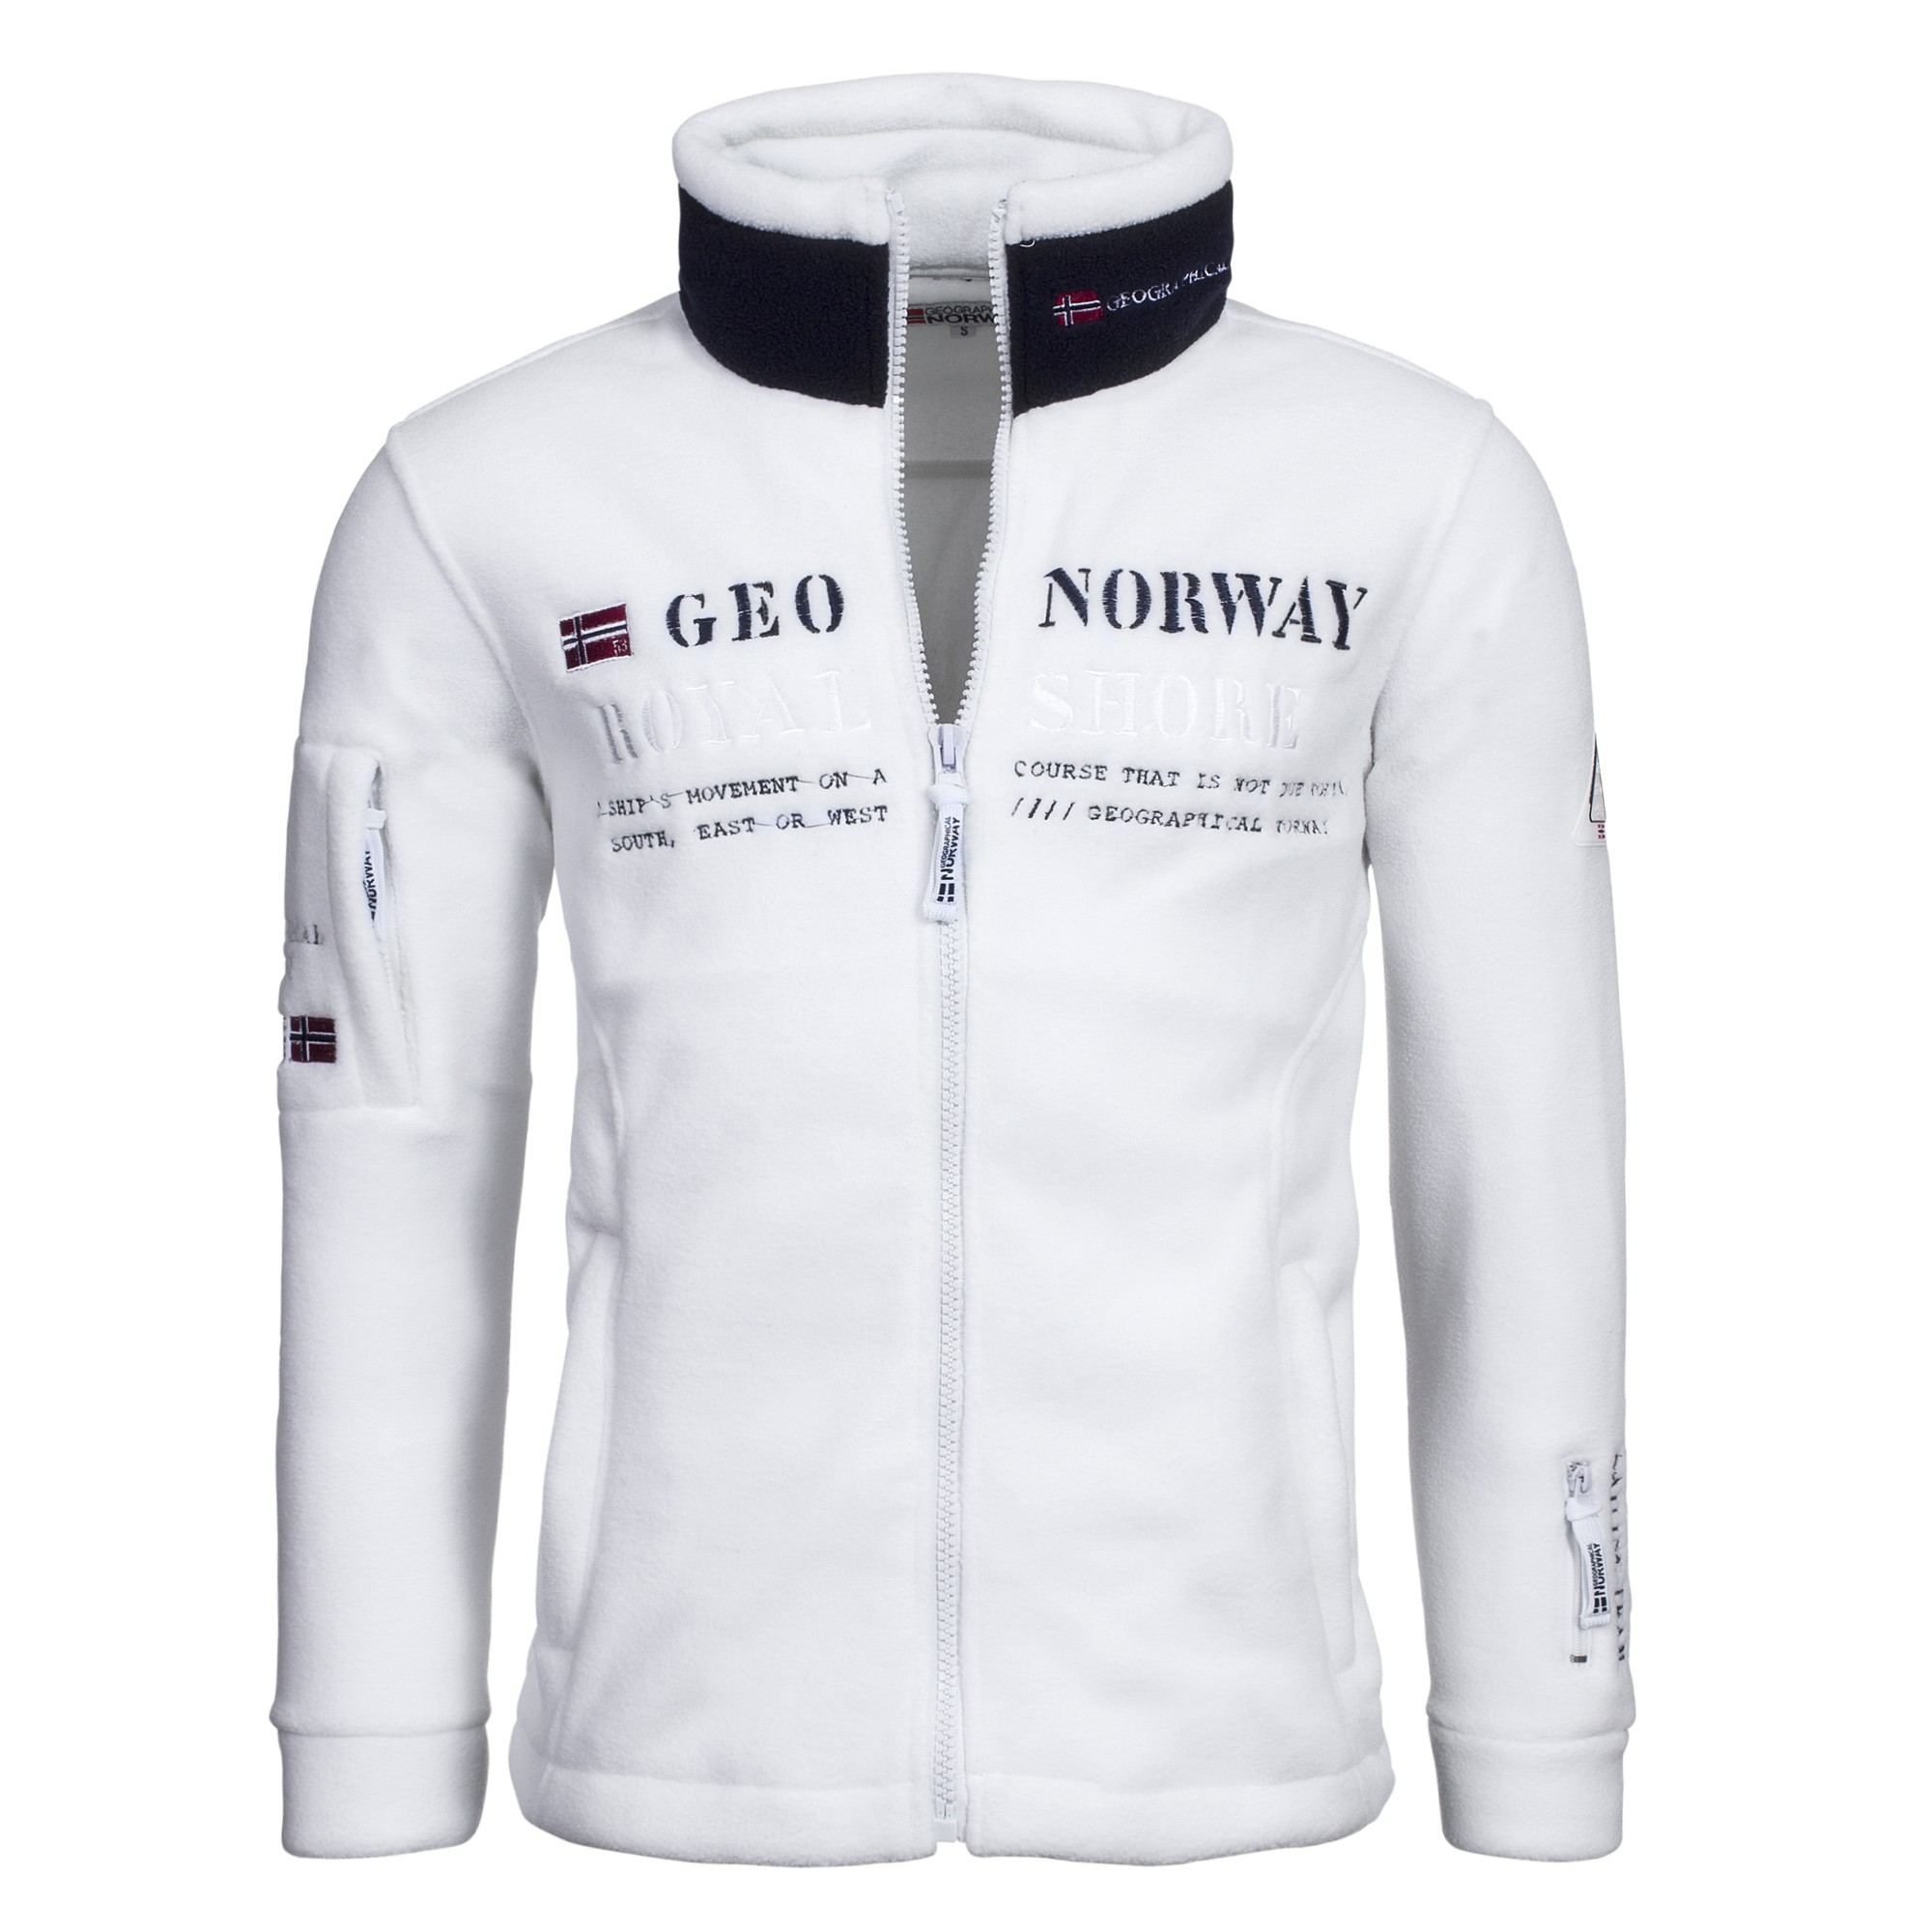 geographical norway ugo herren fleecejacke fleece jacke gr. Black Bedroom Furniture Sets. Home Design Ideas